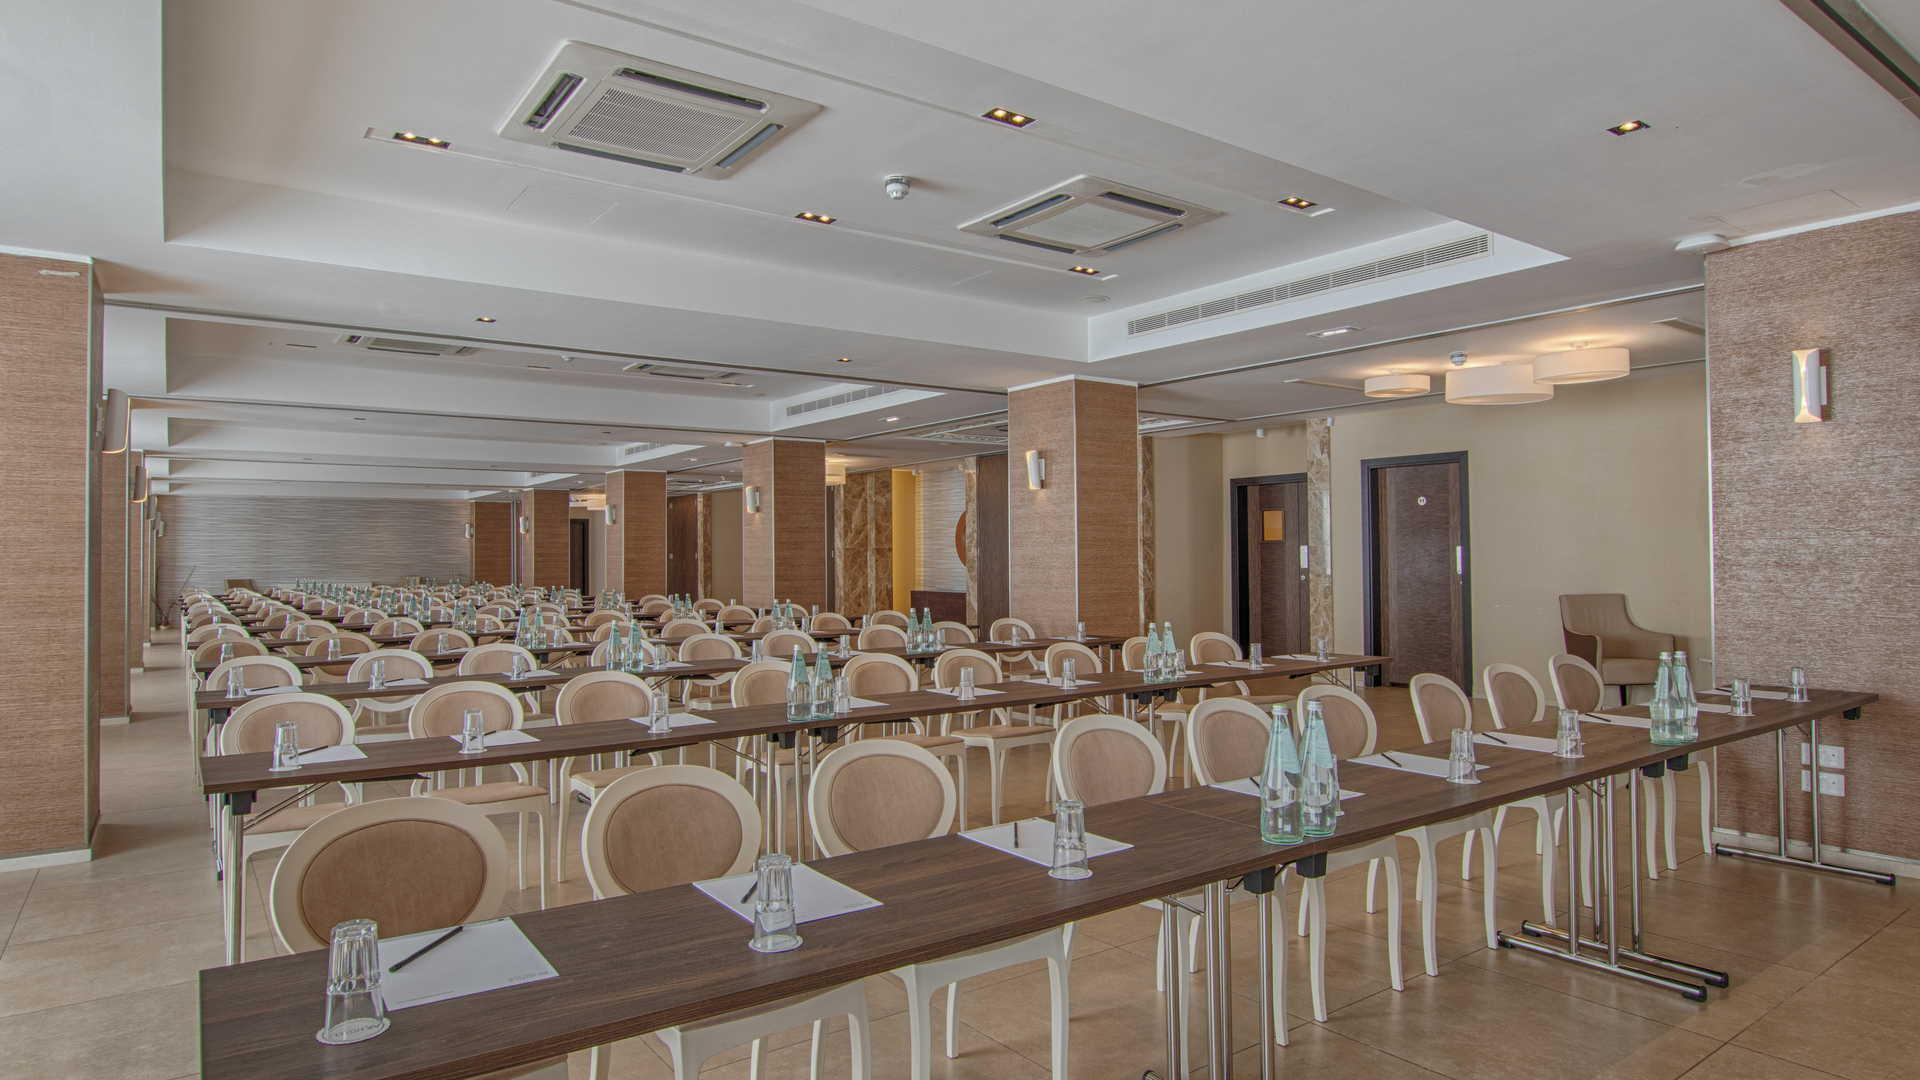 Luzzu Conference Class Room